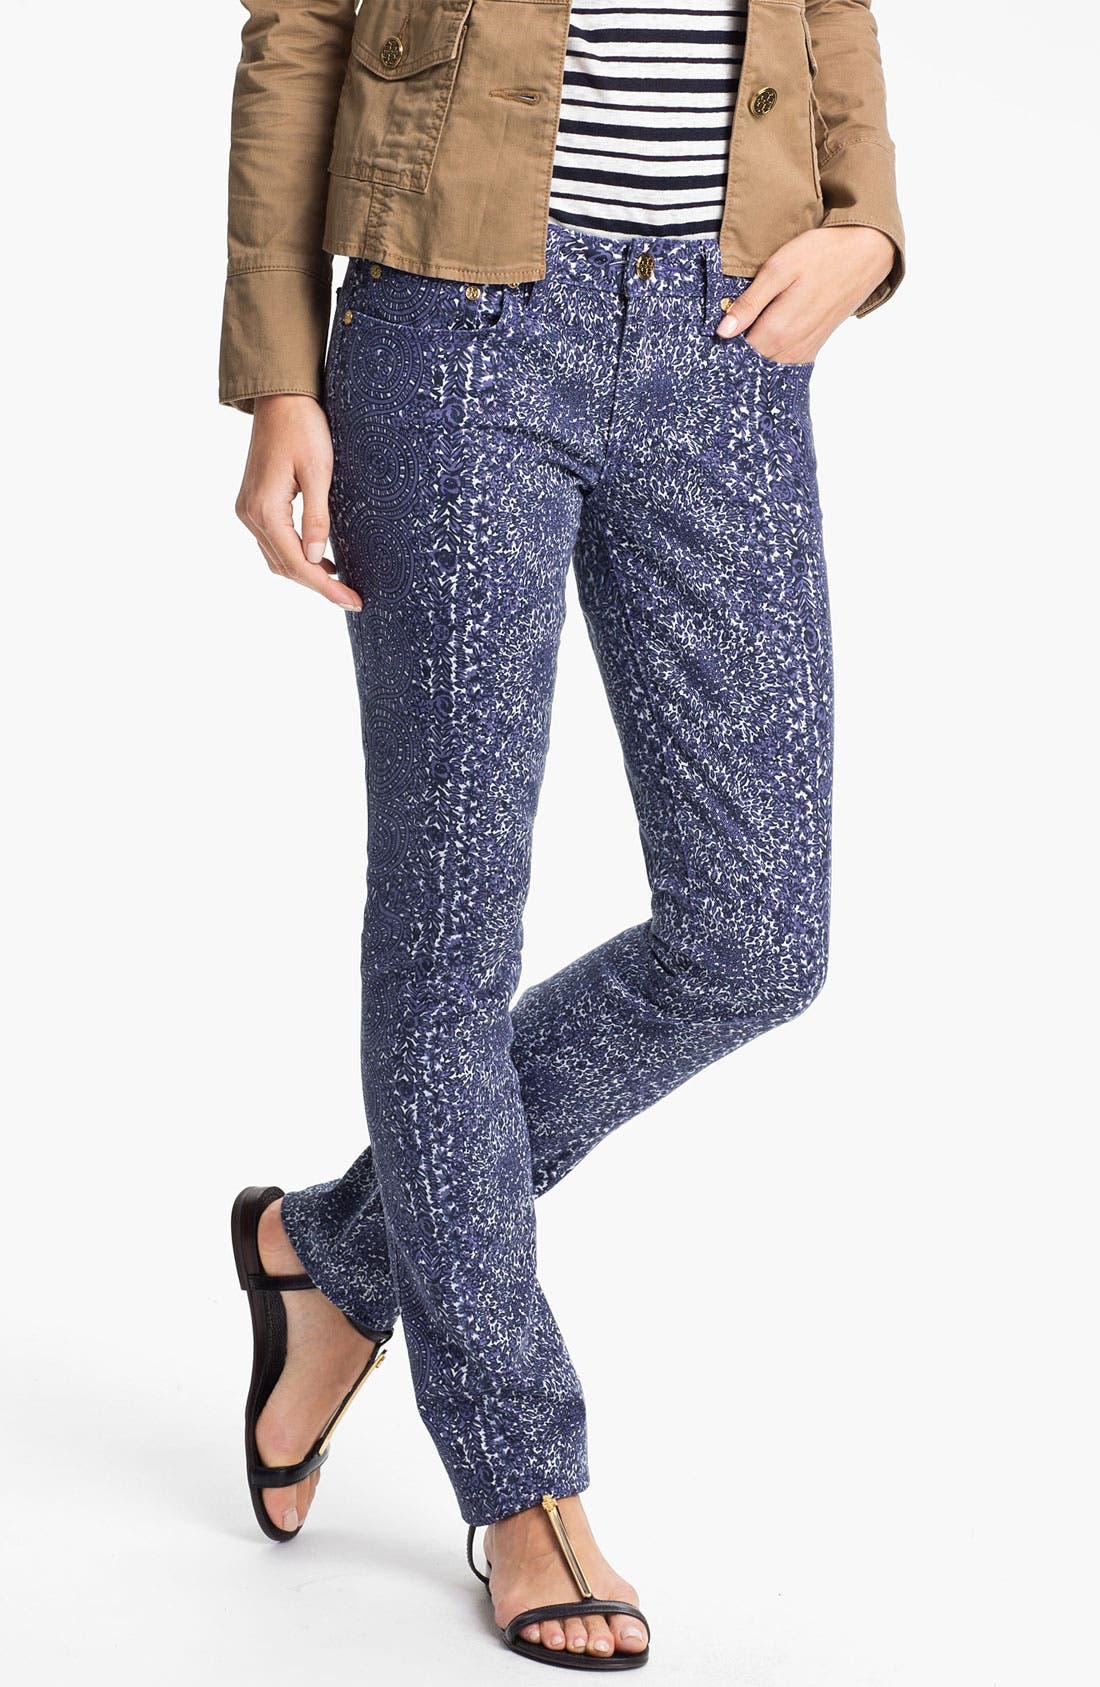 Alternate Image 1 Selected - Tory Burch 'Ivy' Print Skinny Jean